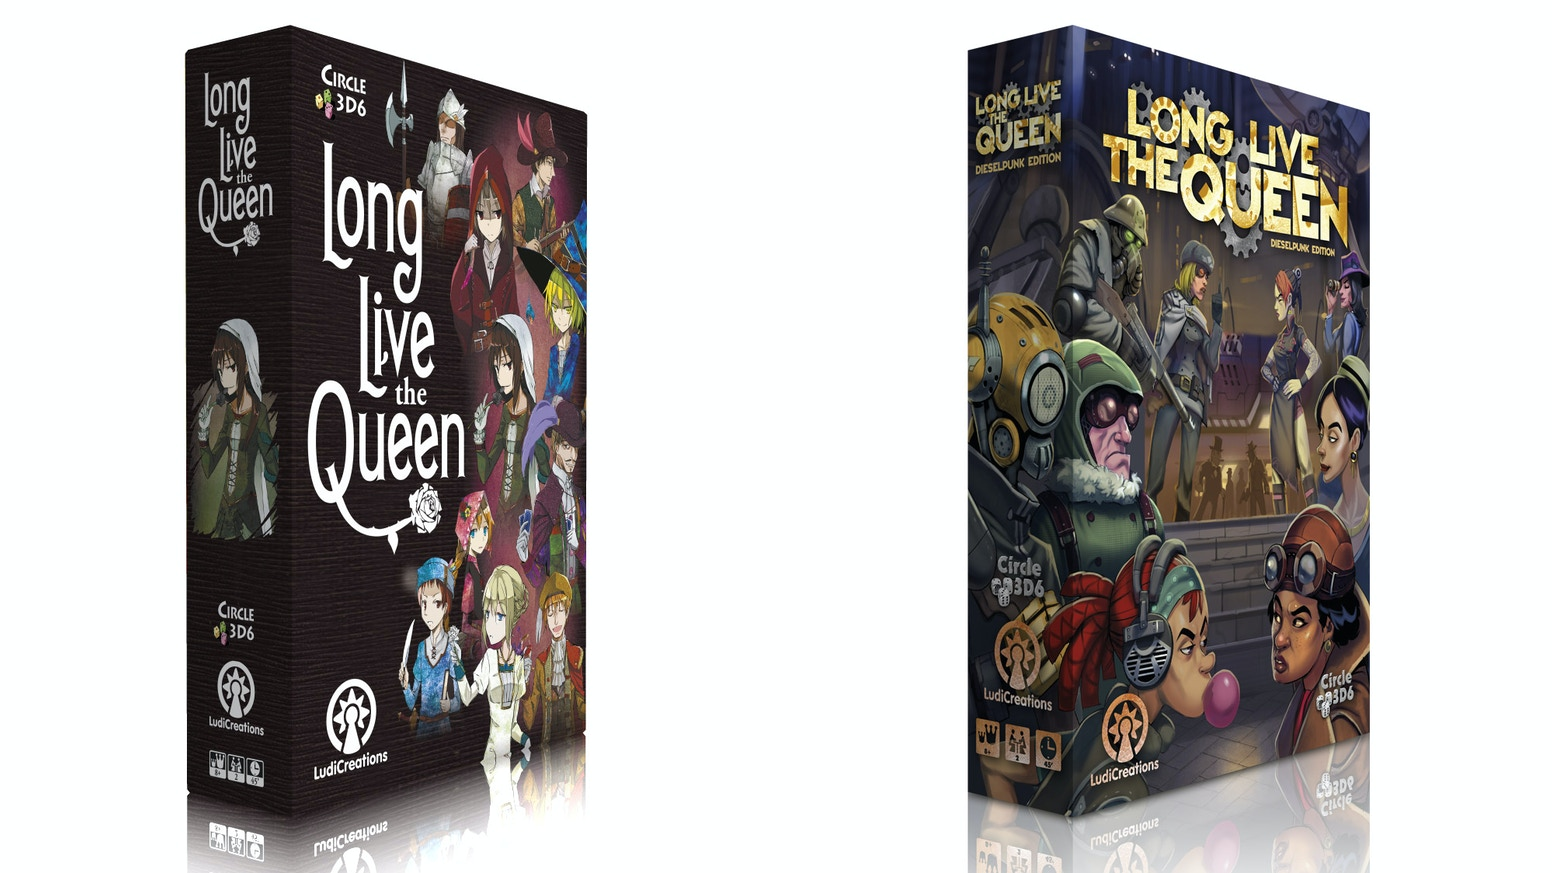 Plot to seize the throne in this dynamic game for 2 players. Choose anime or dieselpunk and help us republish this Japanese gem!